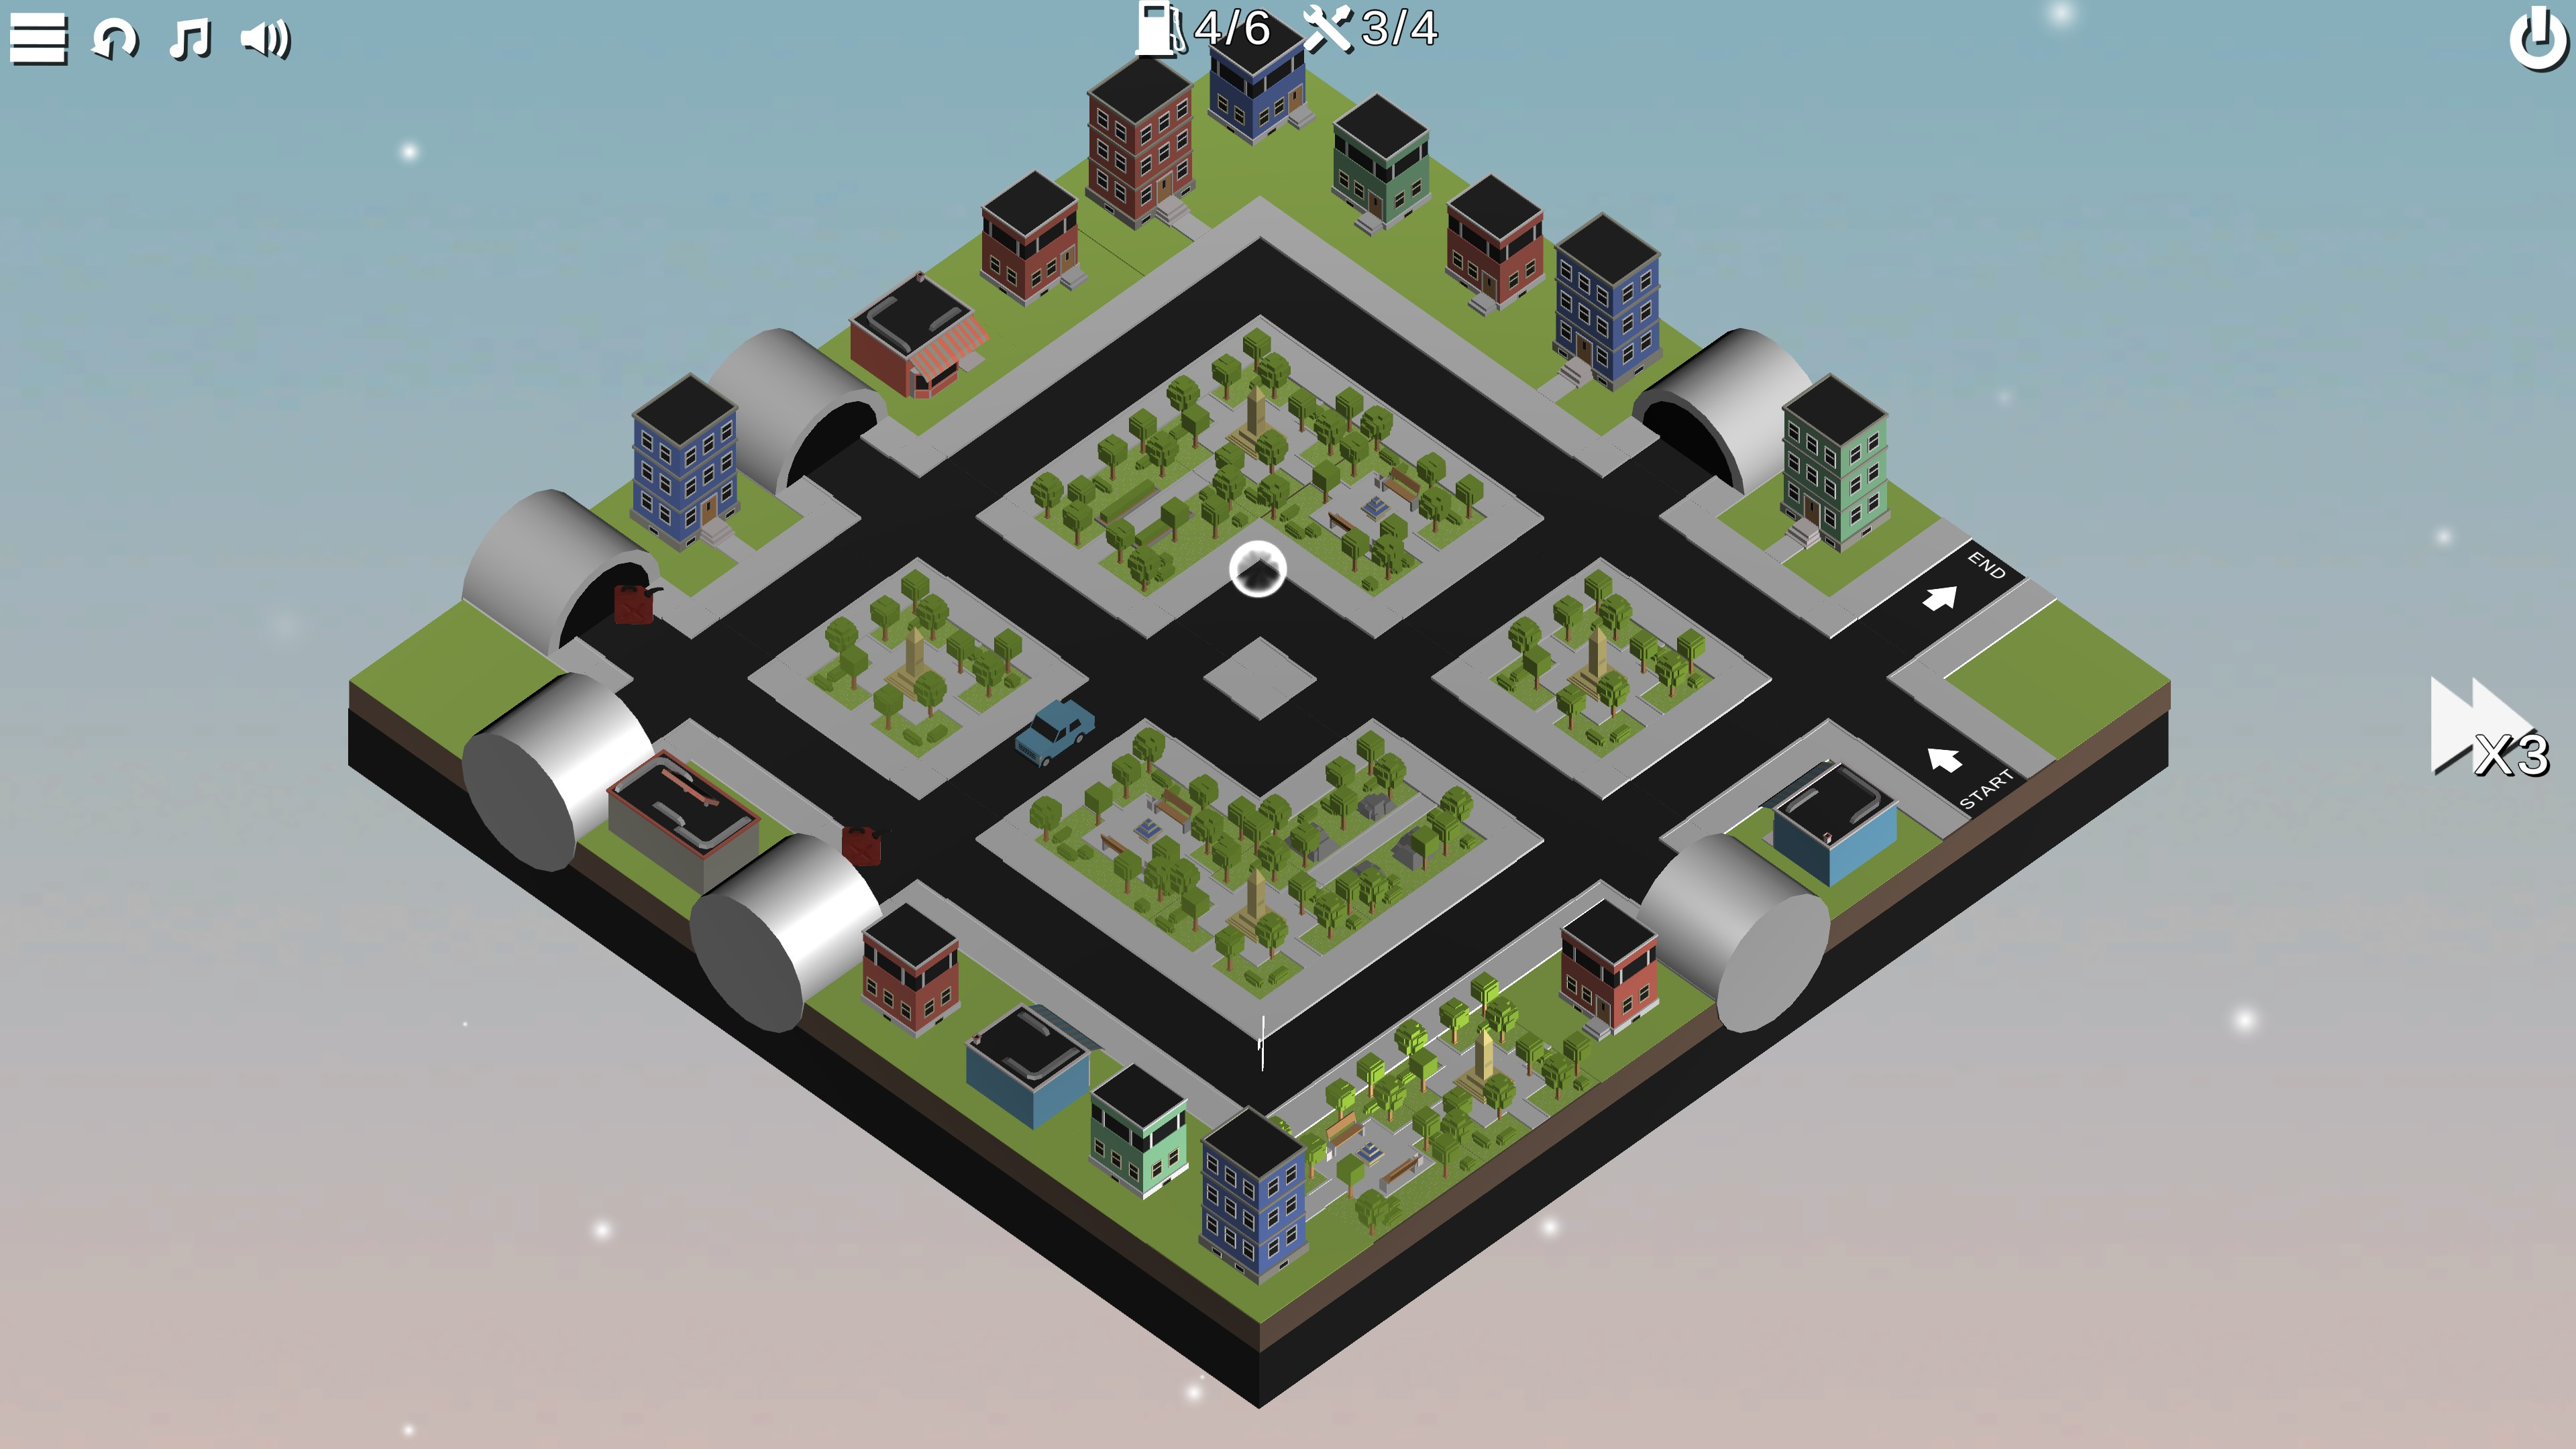 Puzzle Car. A symmetric square city with tunnels on all corners. Buildings border the outside while the center is filled with parks.